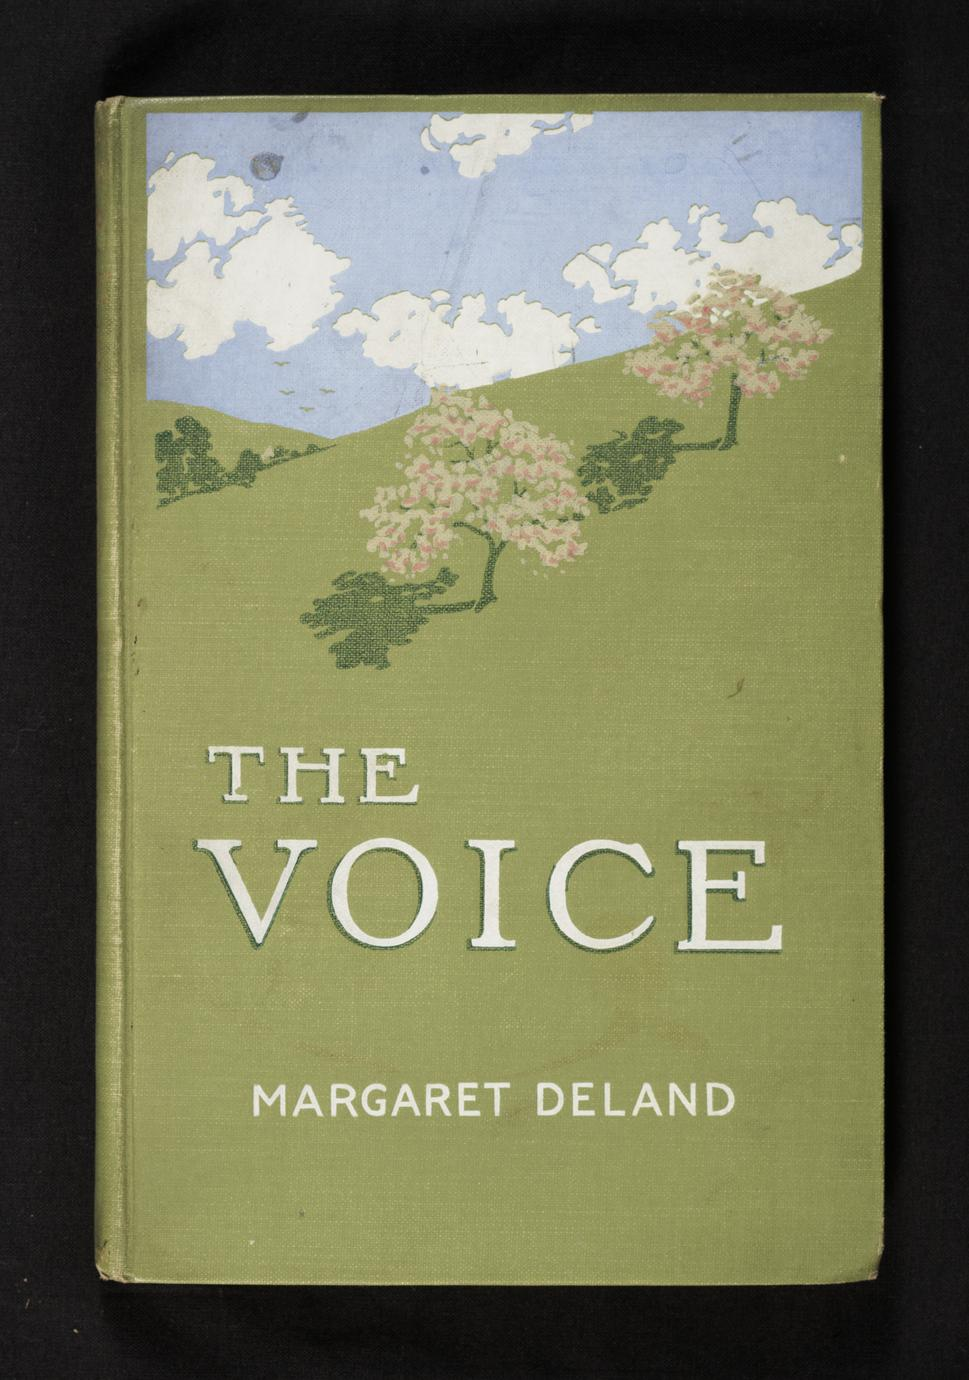 The voice (1 of 2)